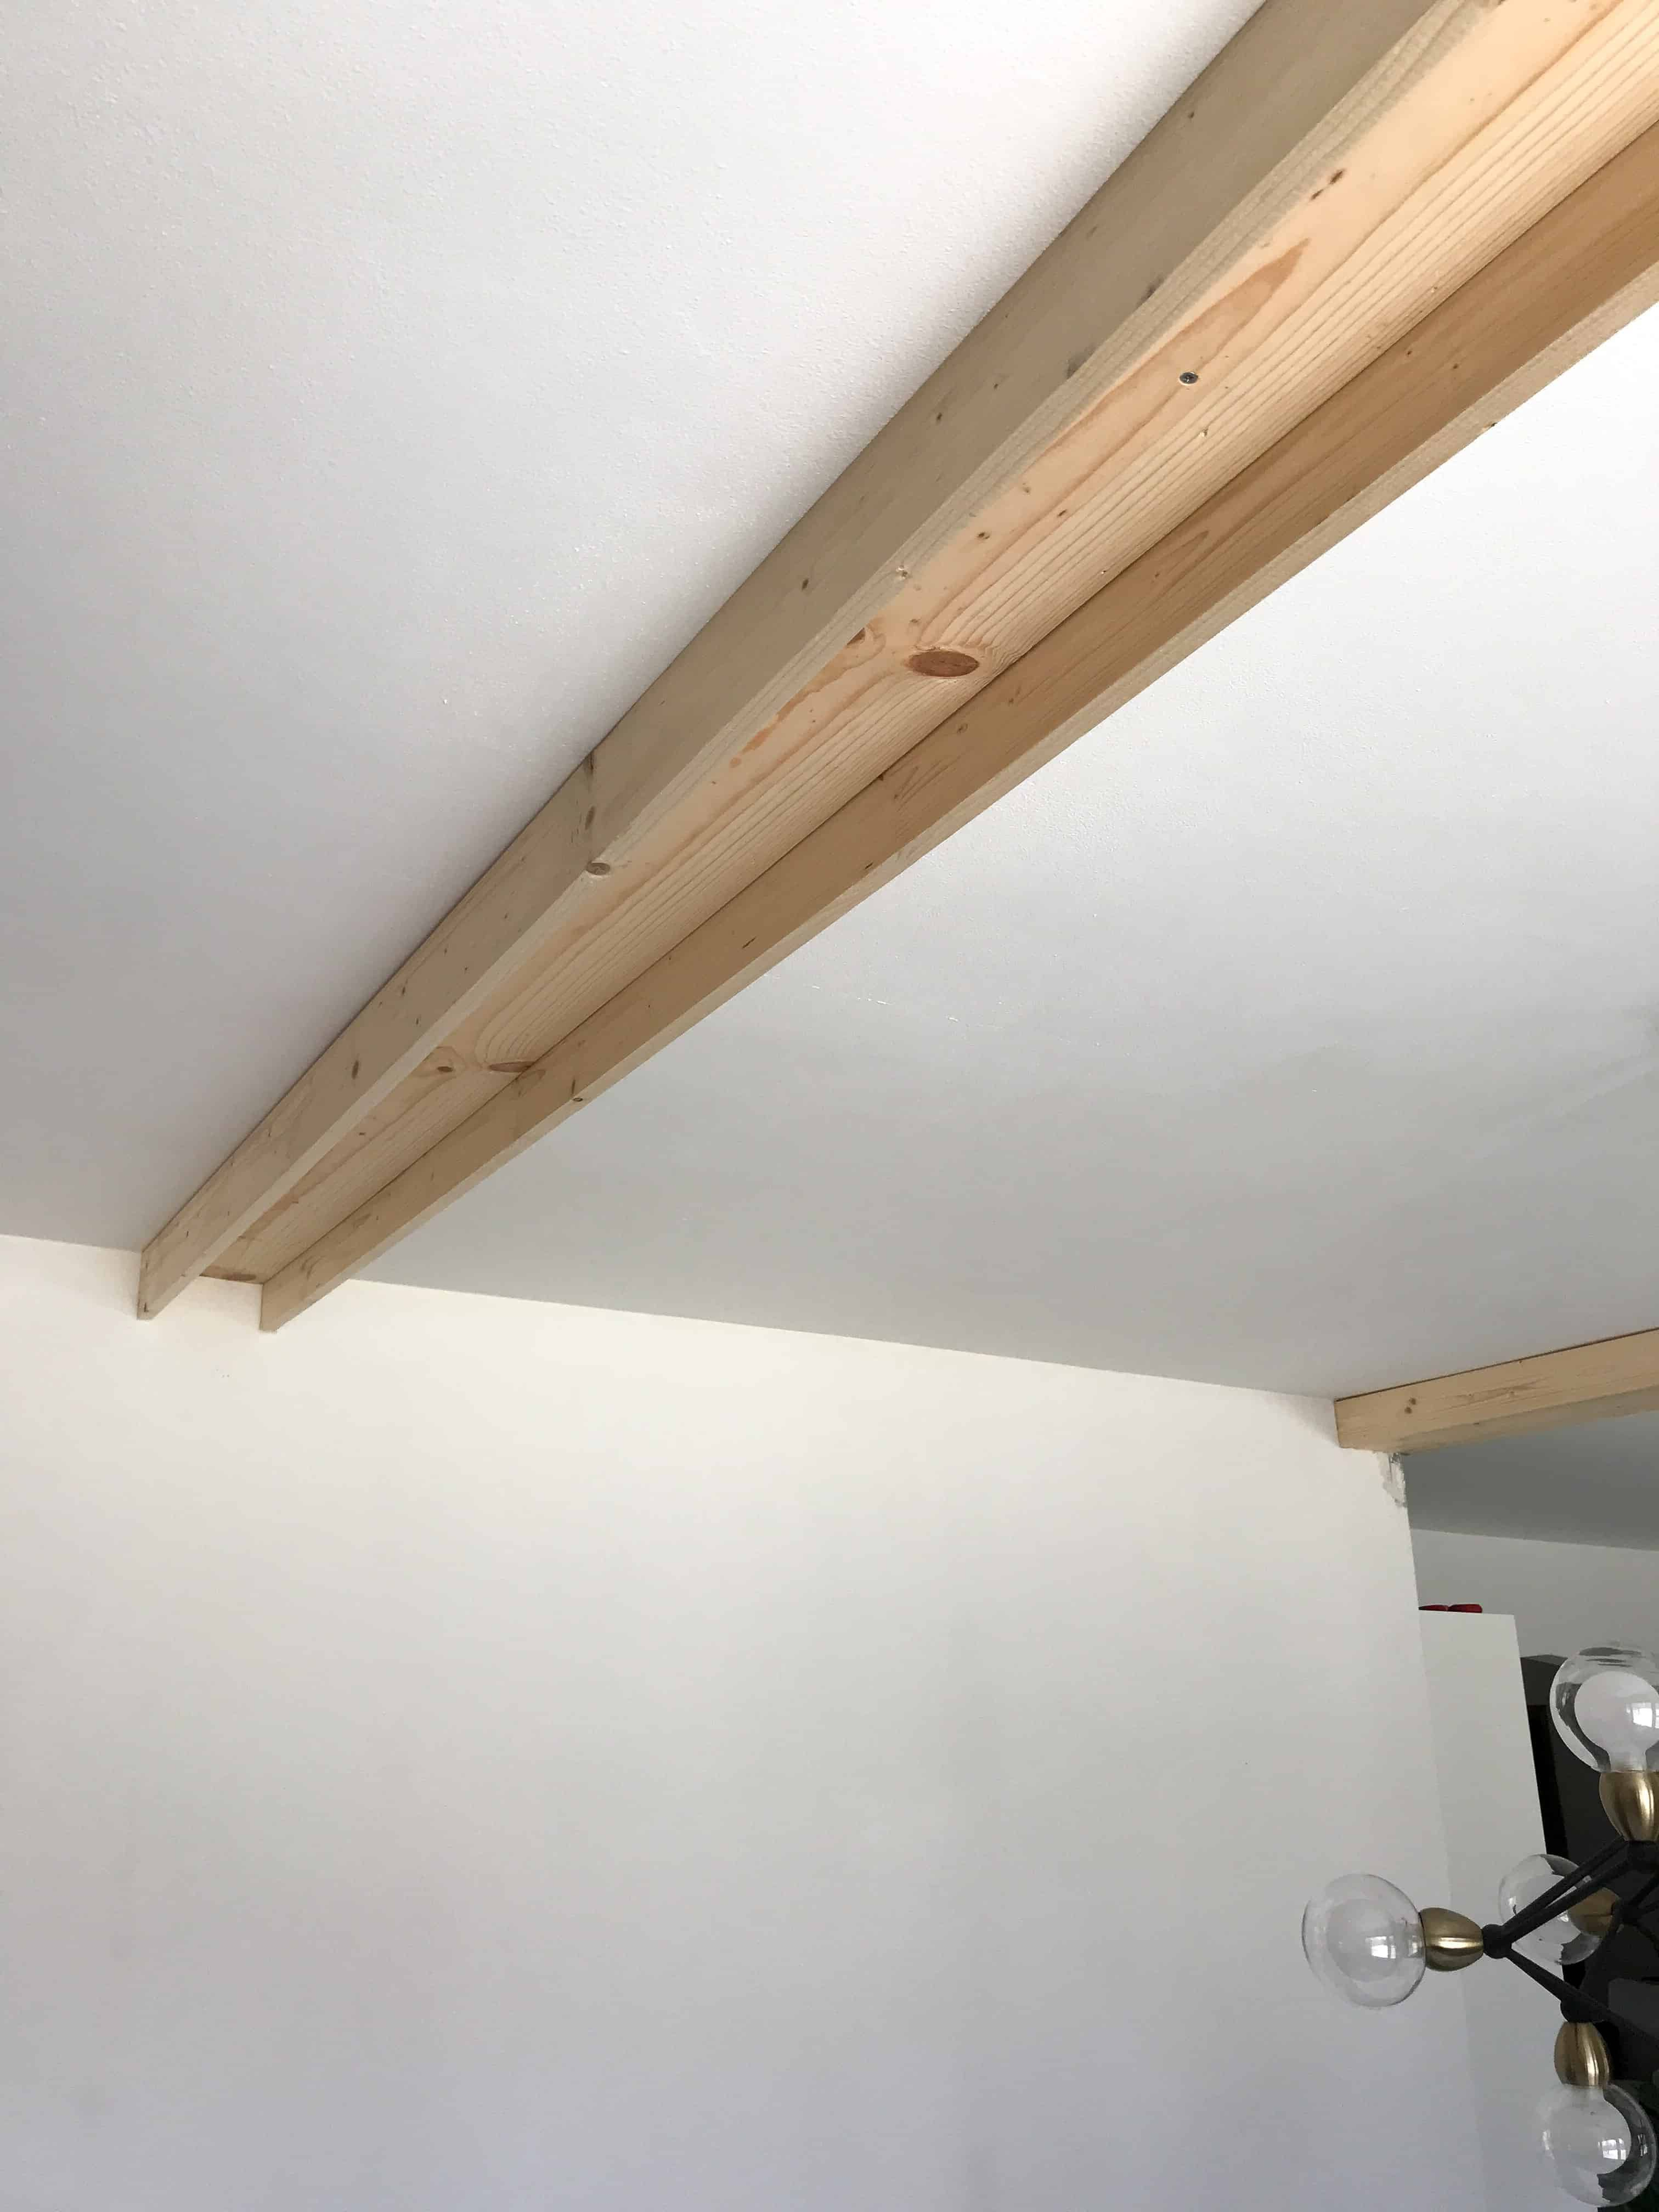 How To Install Faux Wood Beams In 2020 Wood Beam Ceiling Faux